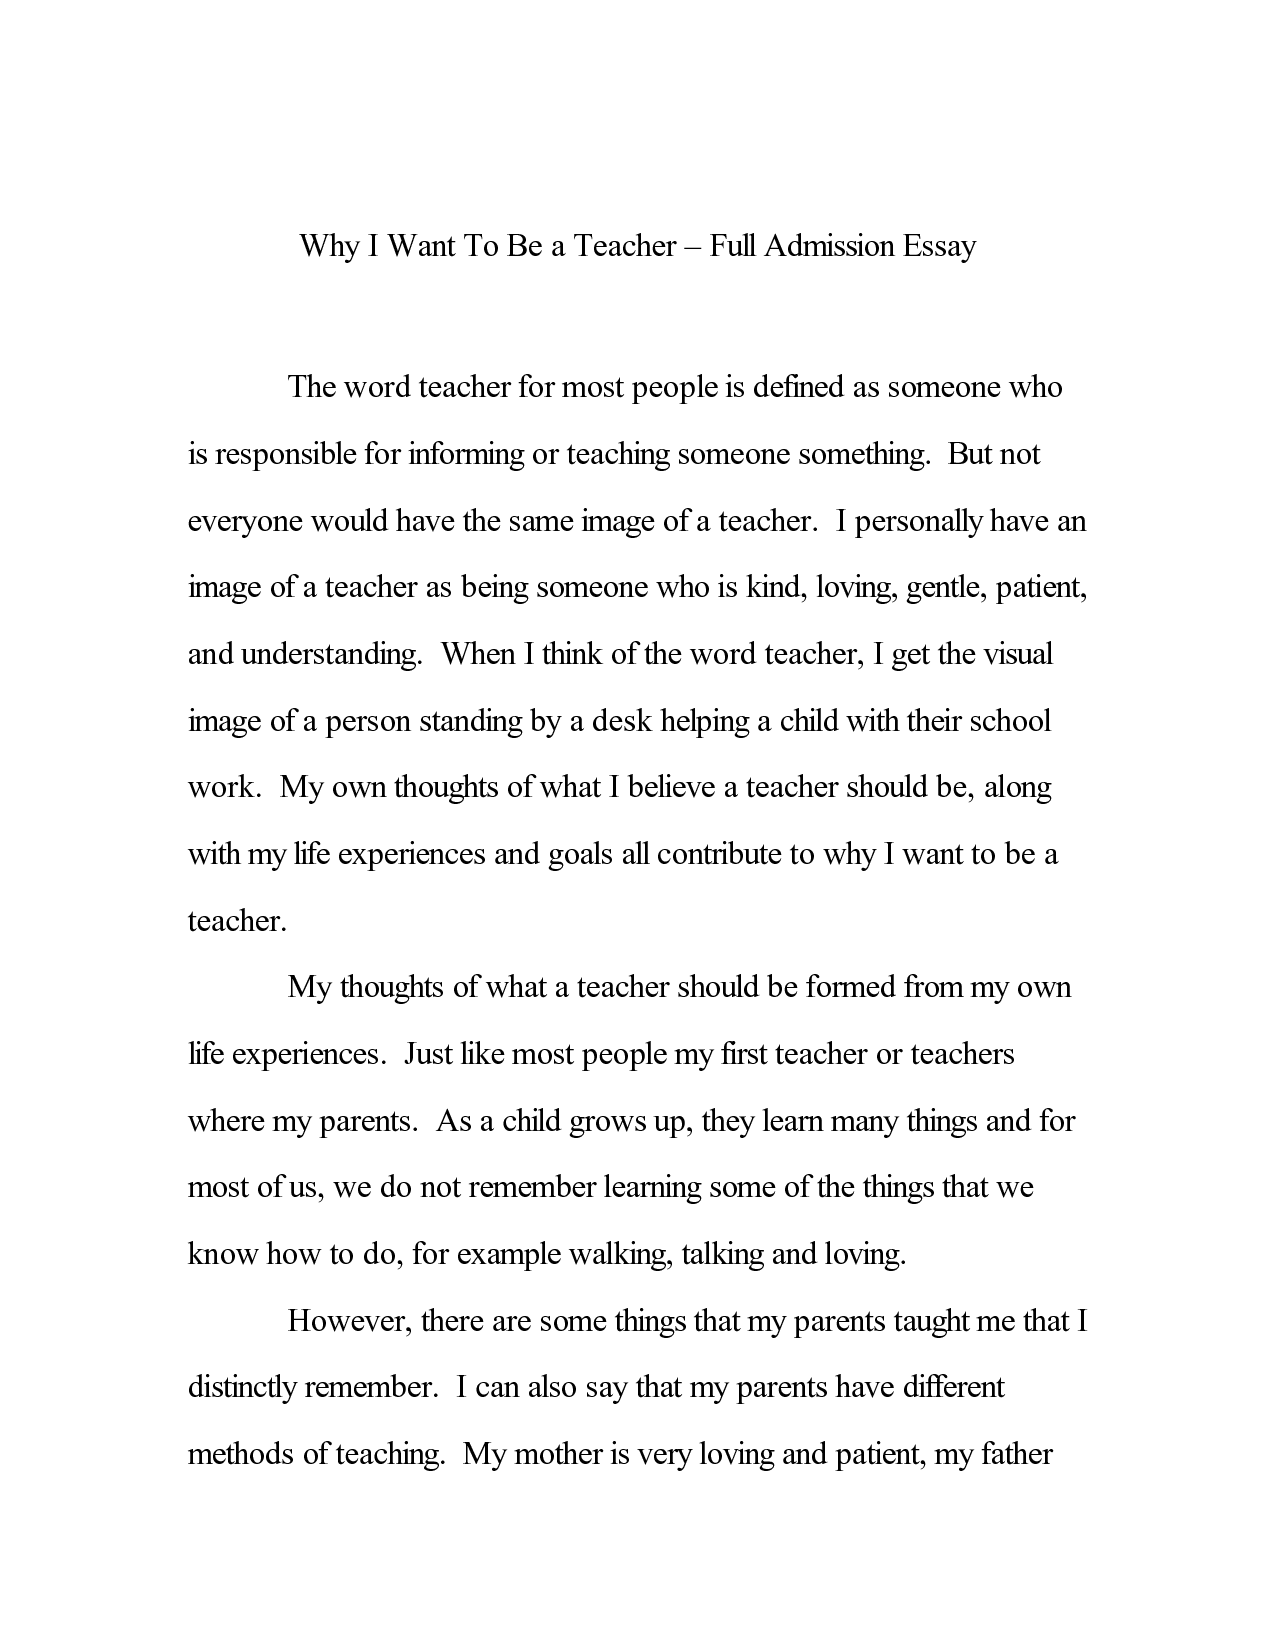 example of college application essay Have you started brainstorming what you should write for your college application essay if you're interested in writing about it on sports, unlock the one of the above profiles for free to read the full essay for inspiration.